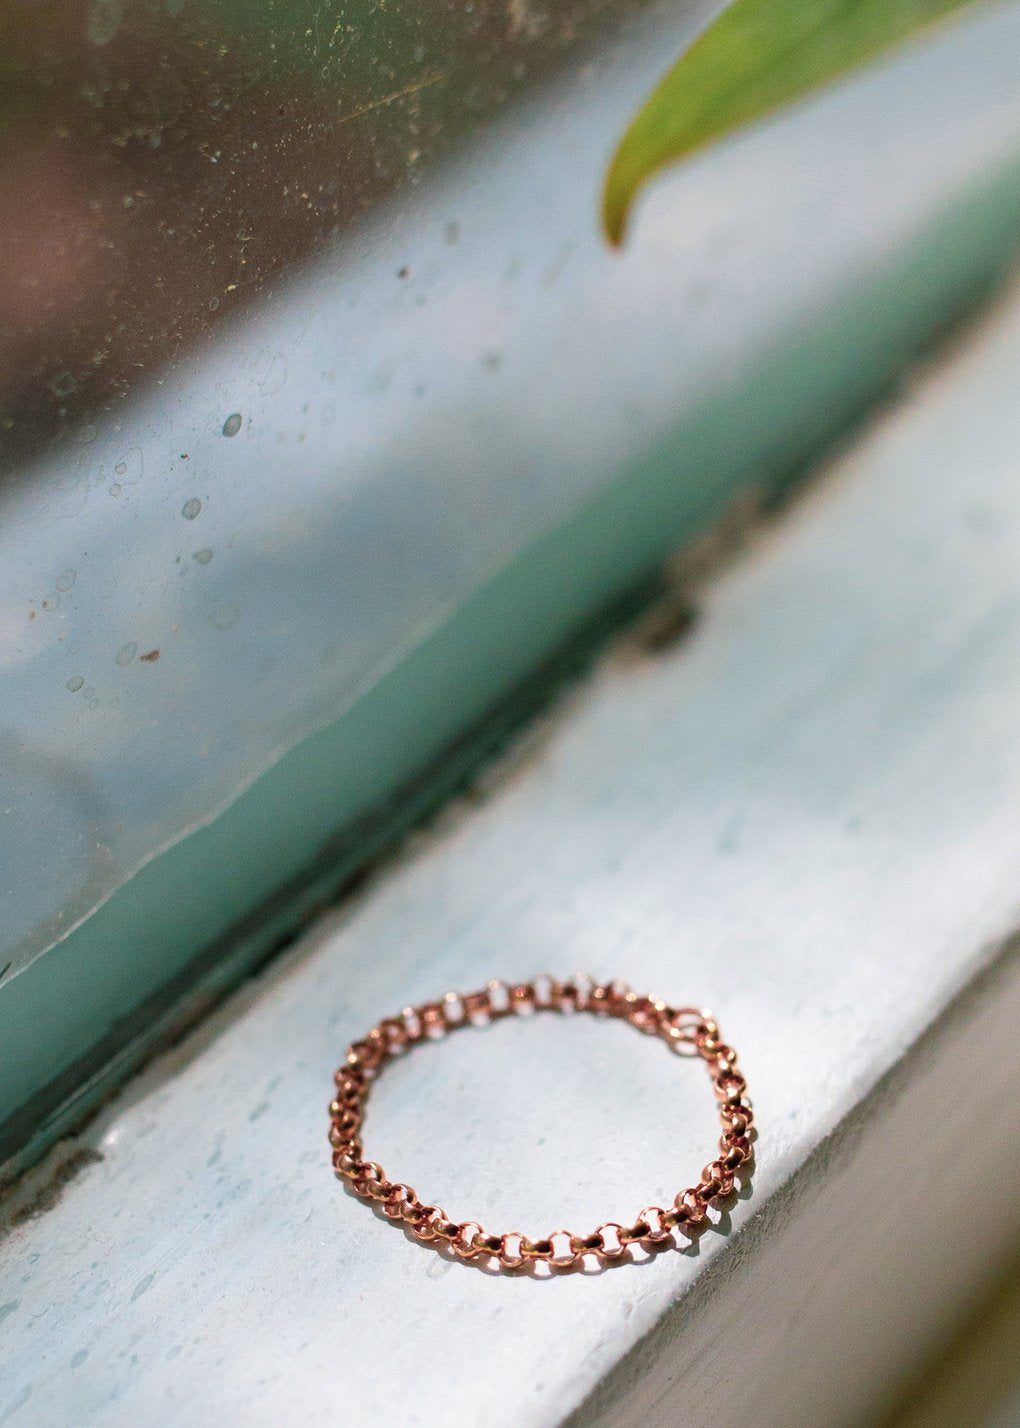 Disparate Youth Chain Ring in 14k Rose Gold